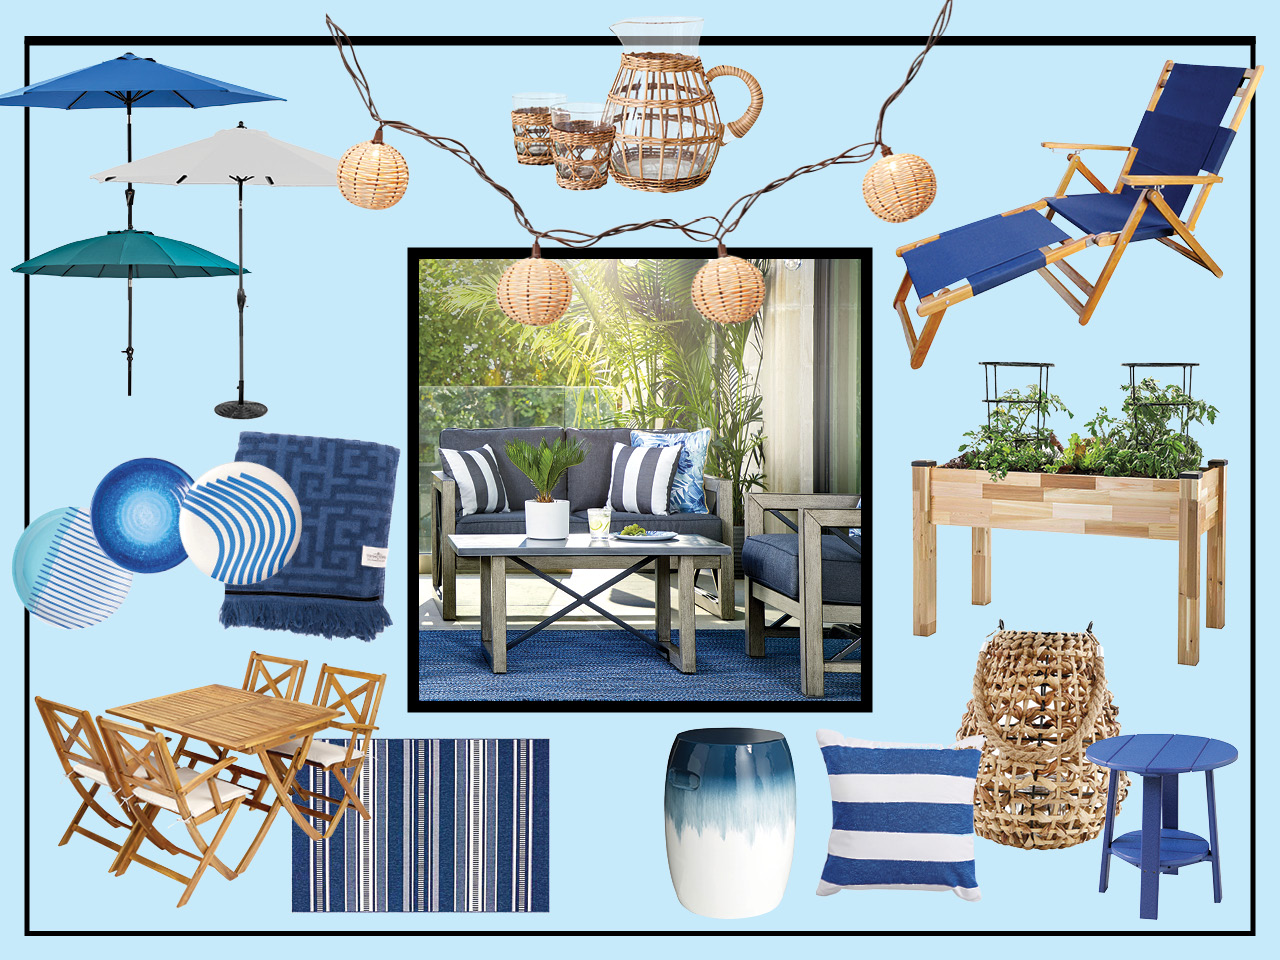 25 Backyard Decorating Ideas For Summer 2020 | Chatelaine on Backyard Decor Canada id=77676